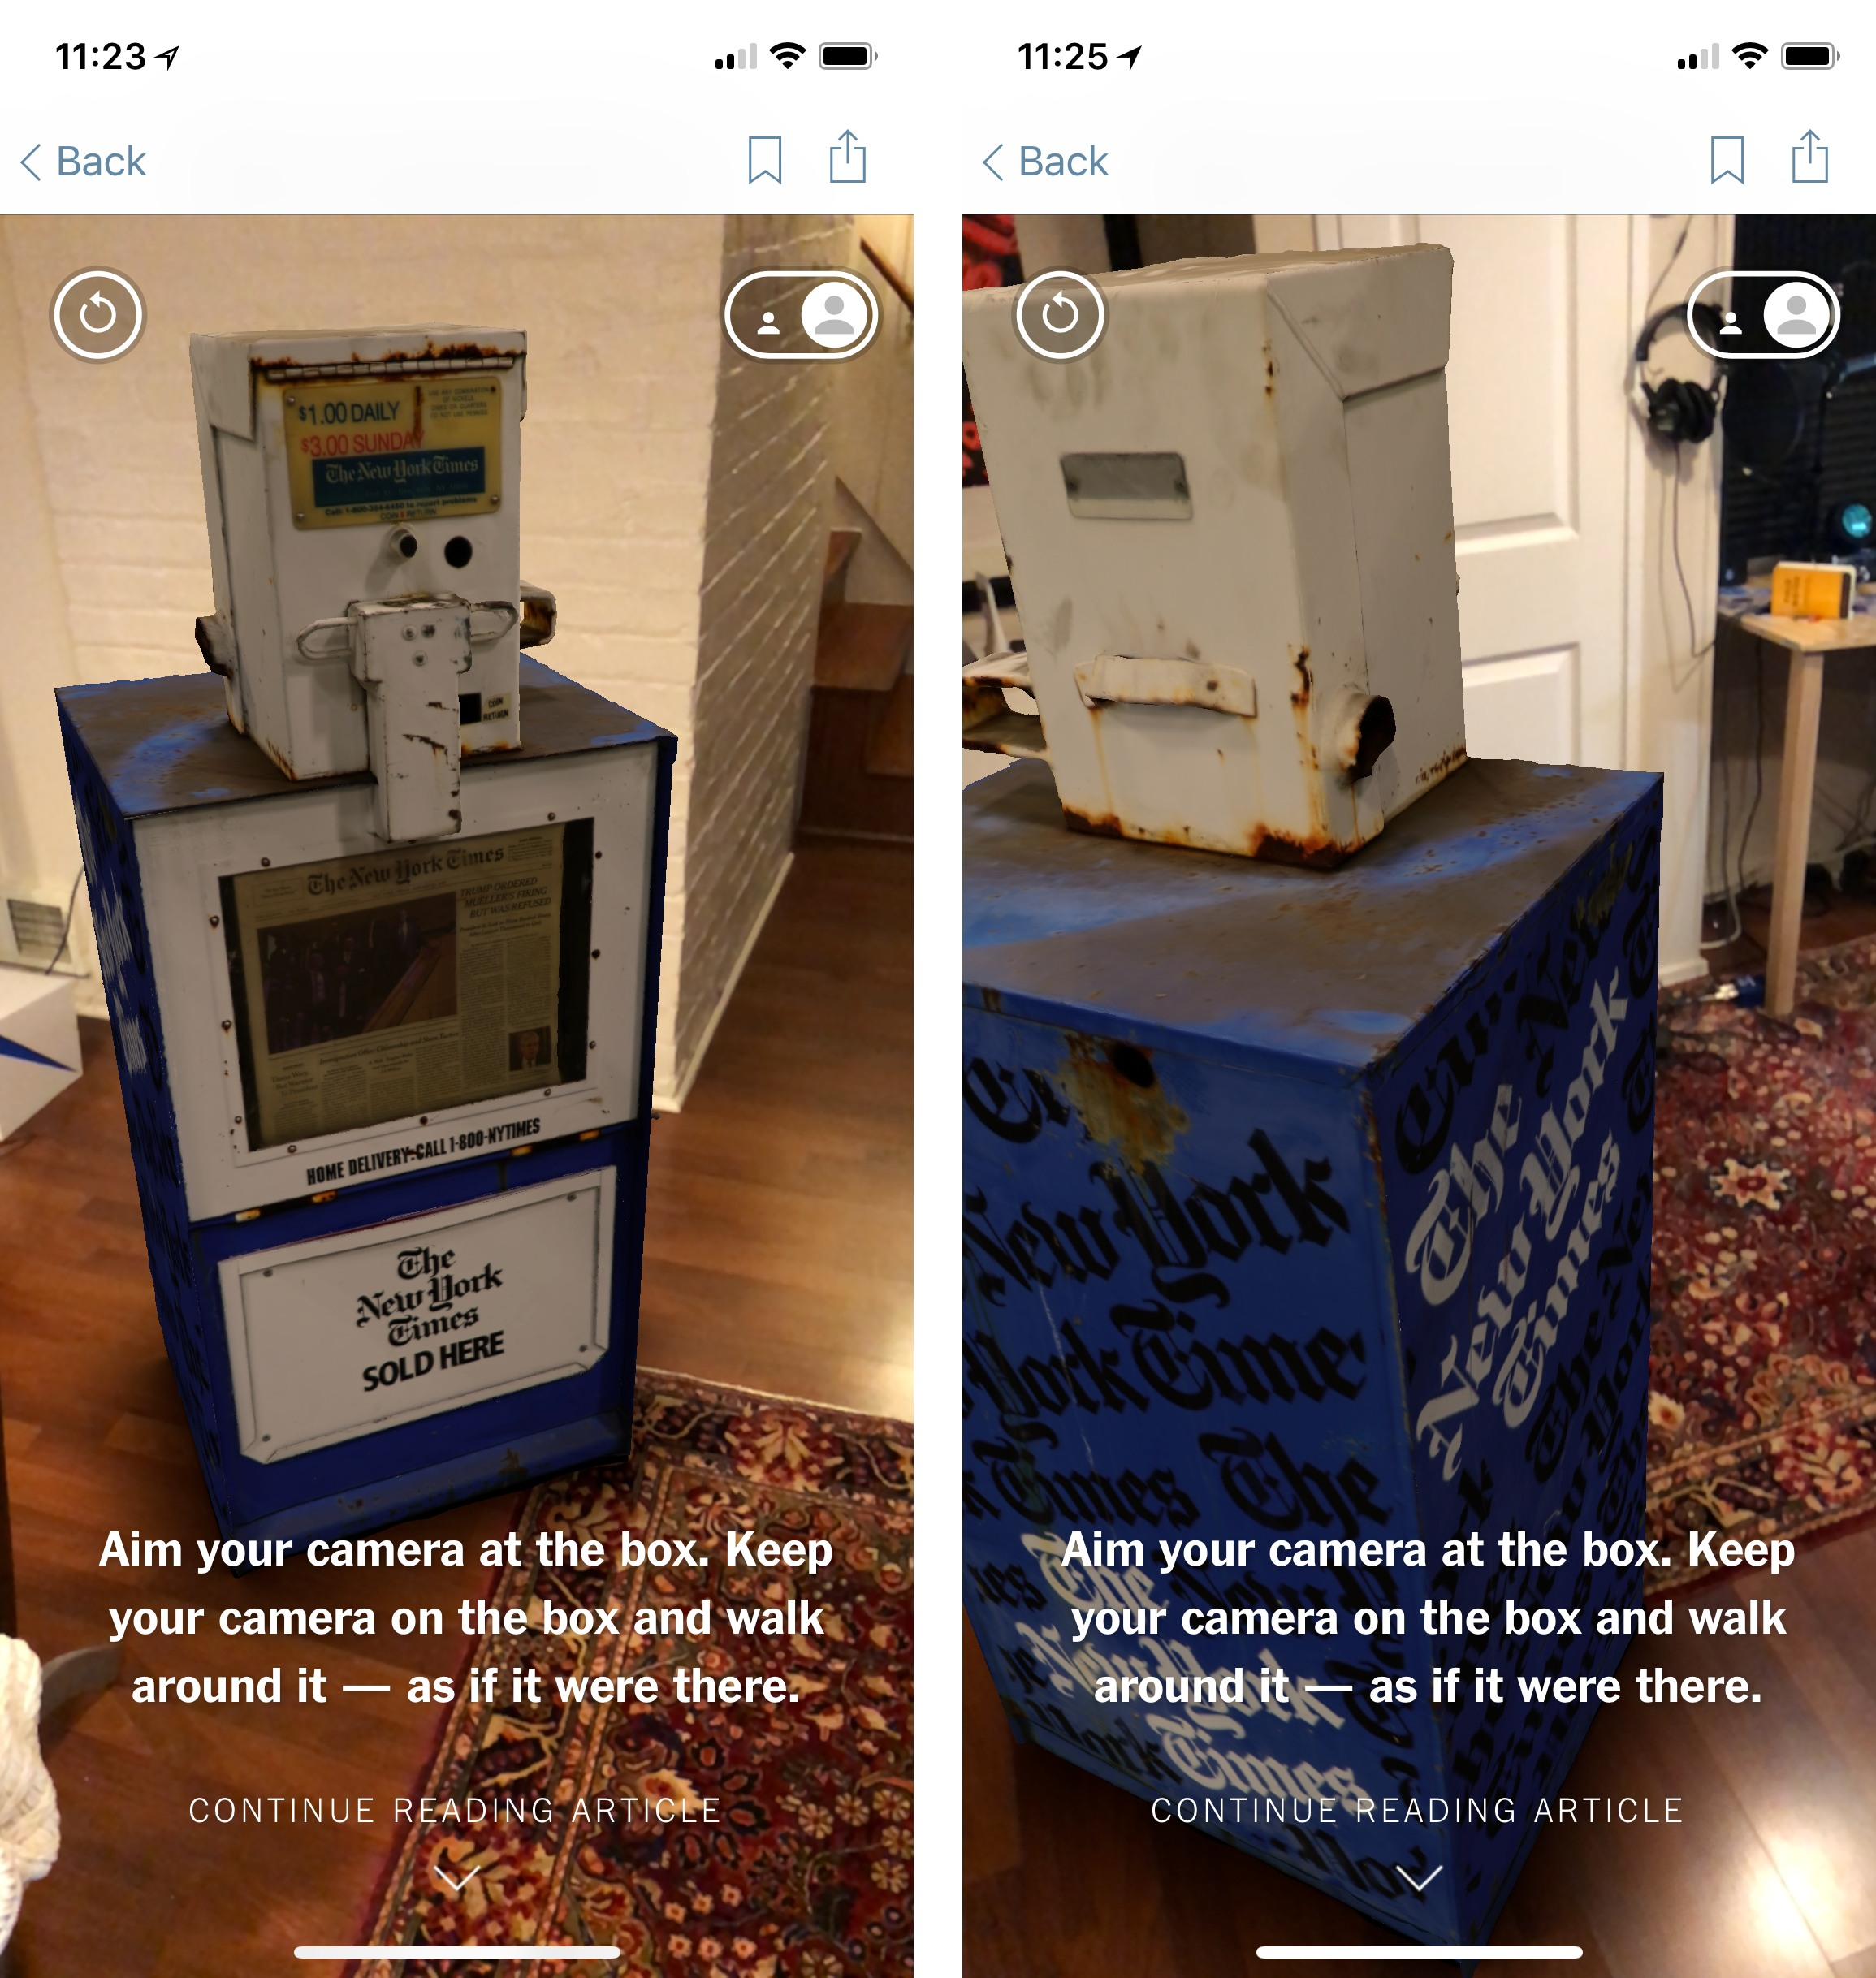 The New York Times debuted its new ARKit features with a newspaper box demo.